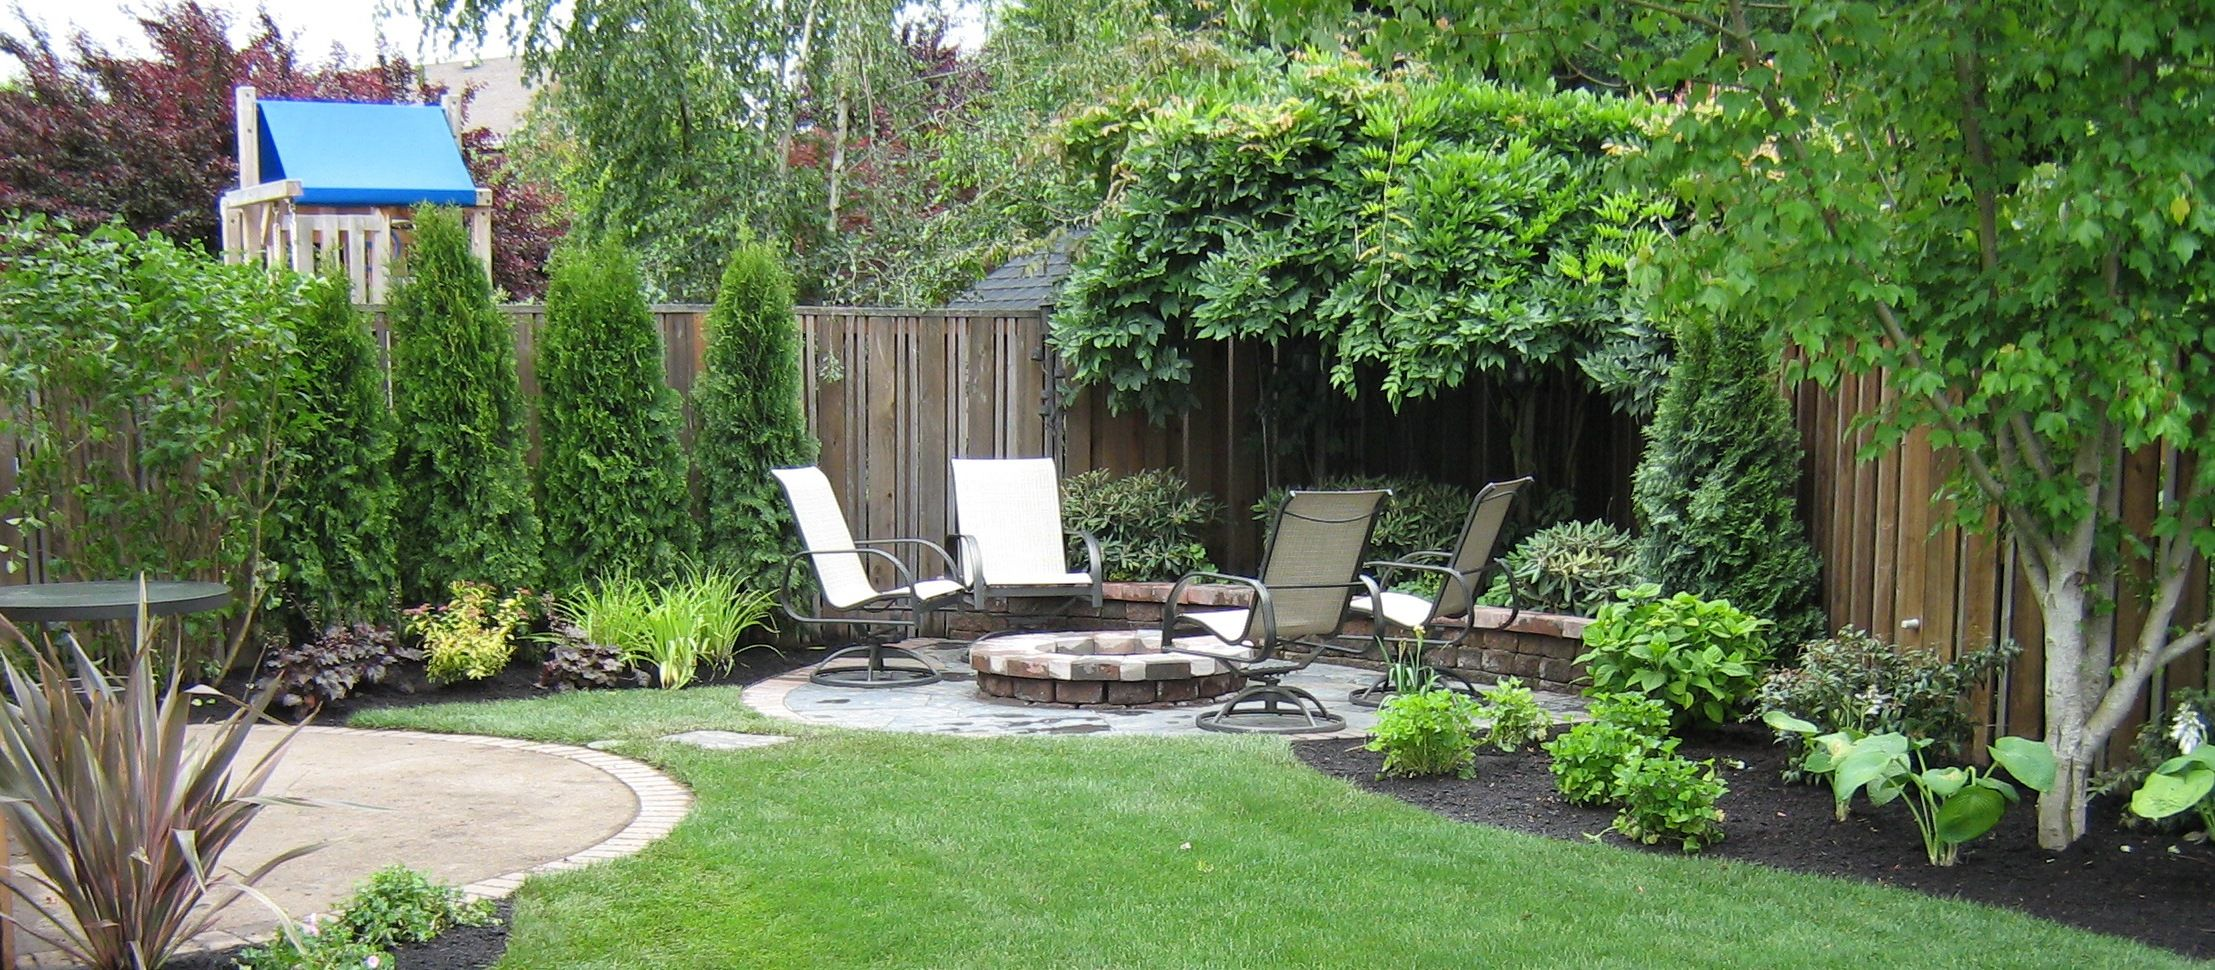 Small backyard landscaping ideas photos garden design for Small back garden designs